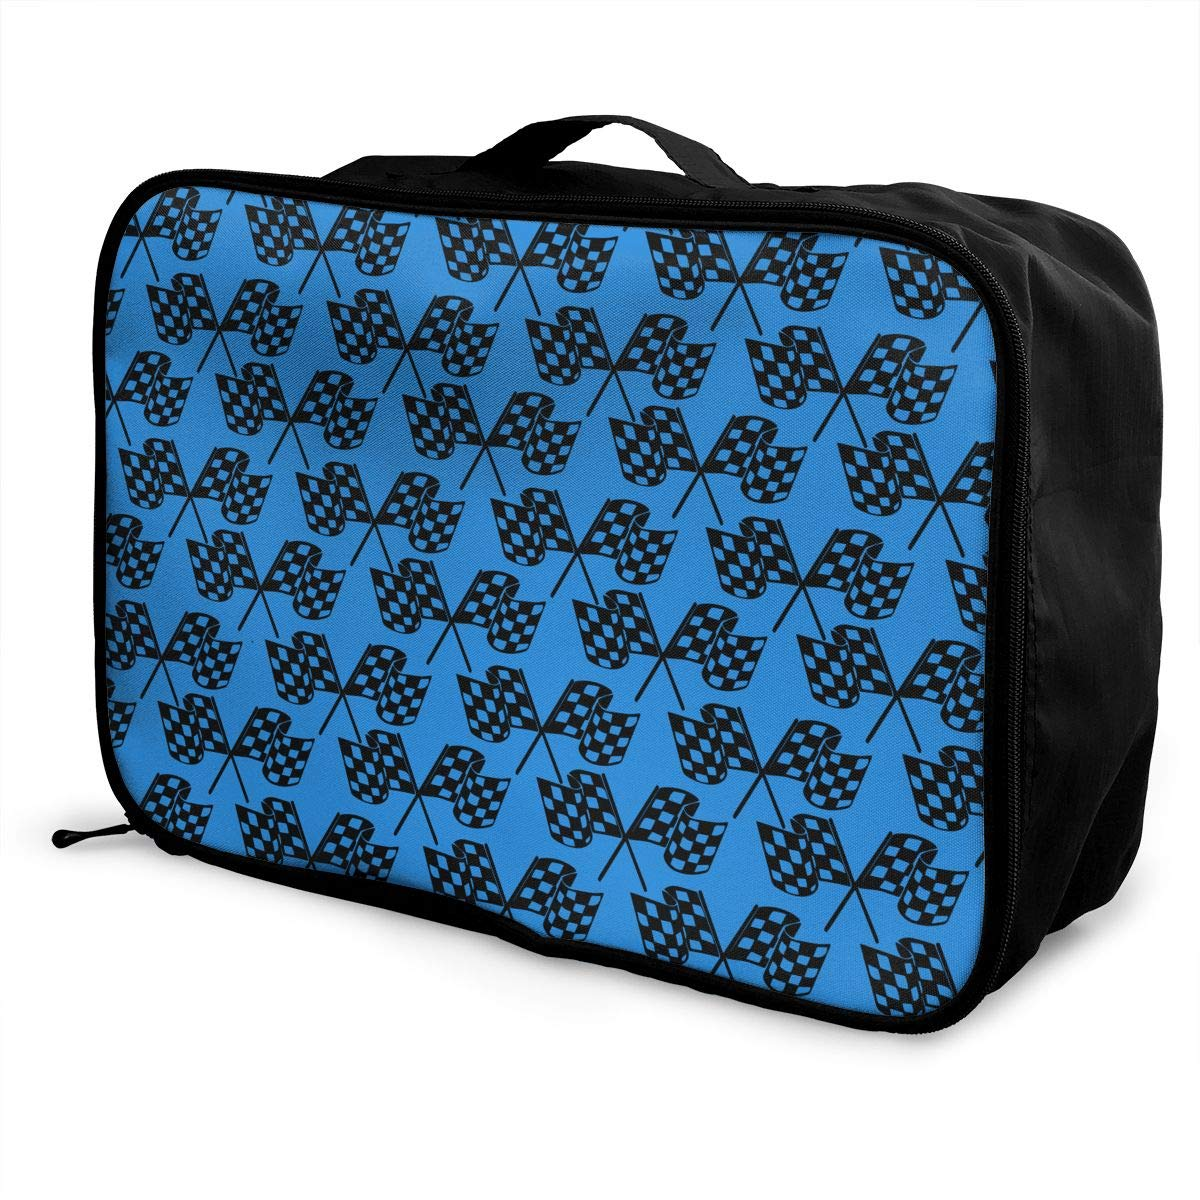 YueLJB Checkered Flags Lightweight Large Capacity Portable Luggage Bag Travel Duffel Bag Storage Carry Luggage Duffle Tote Bag